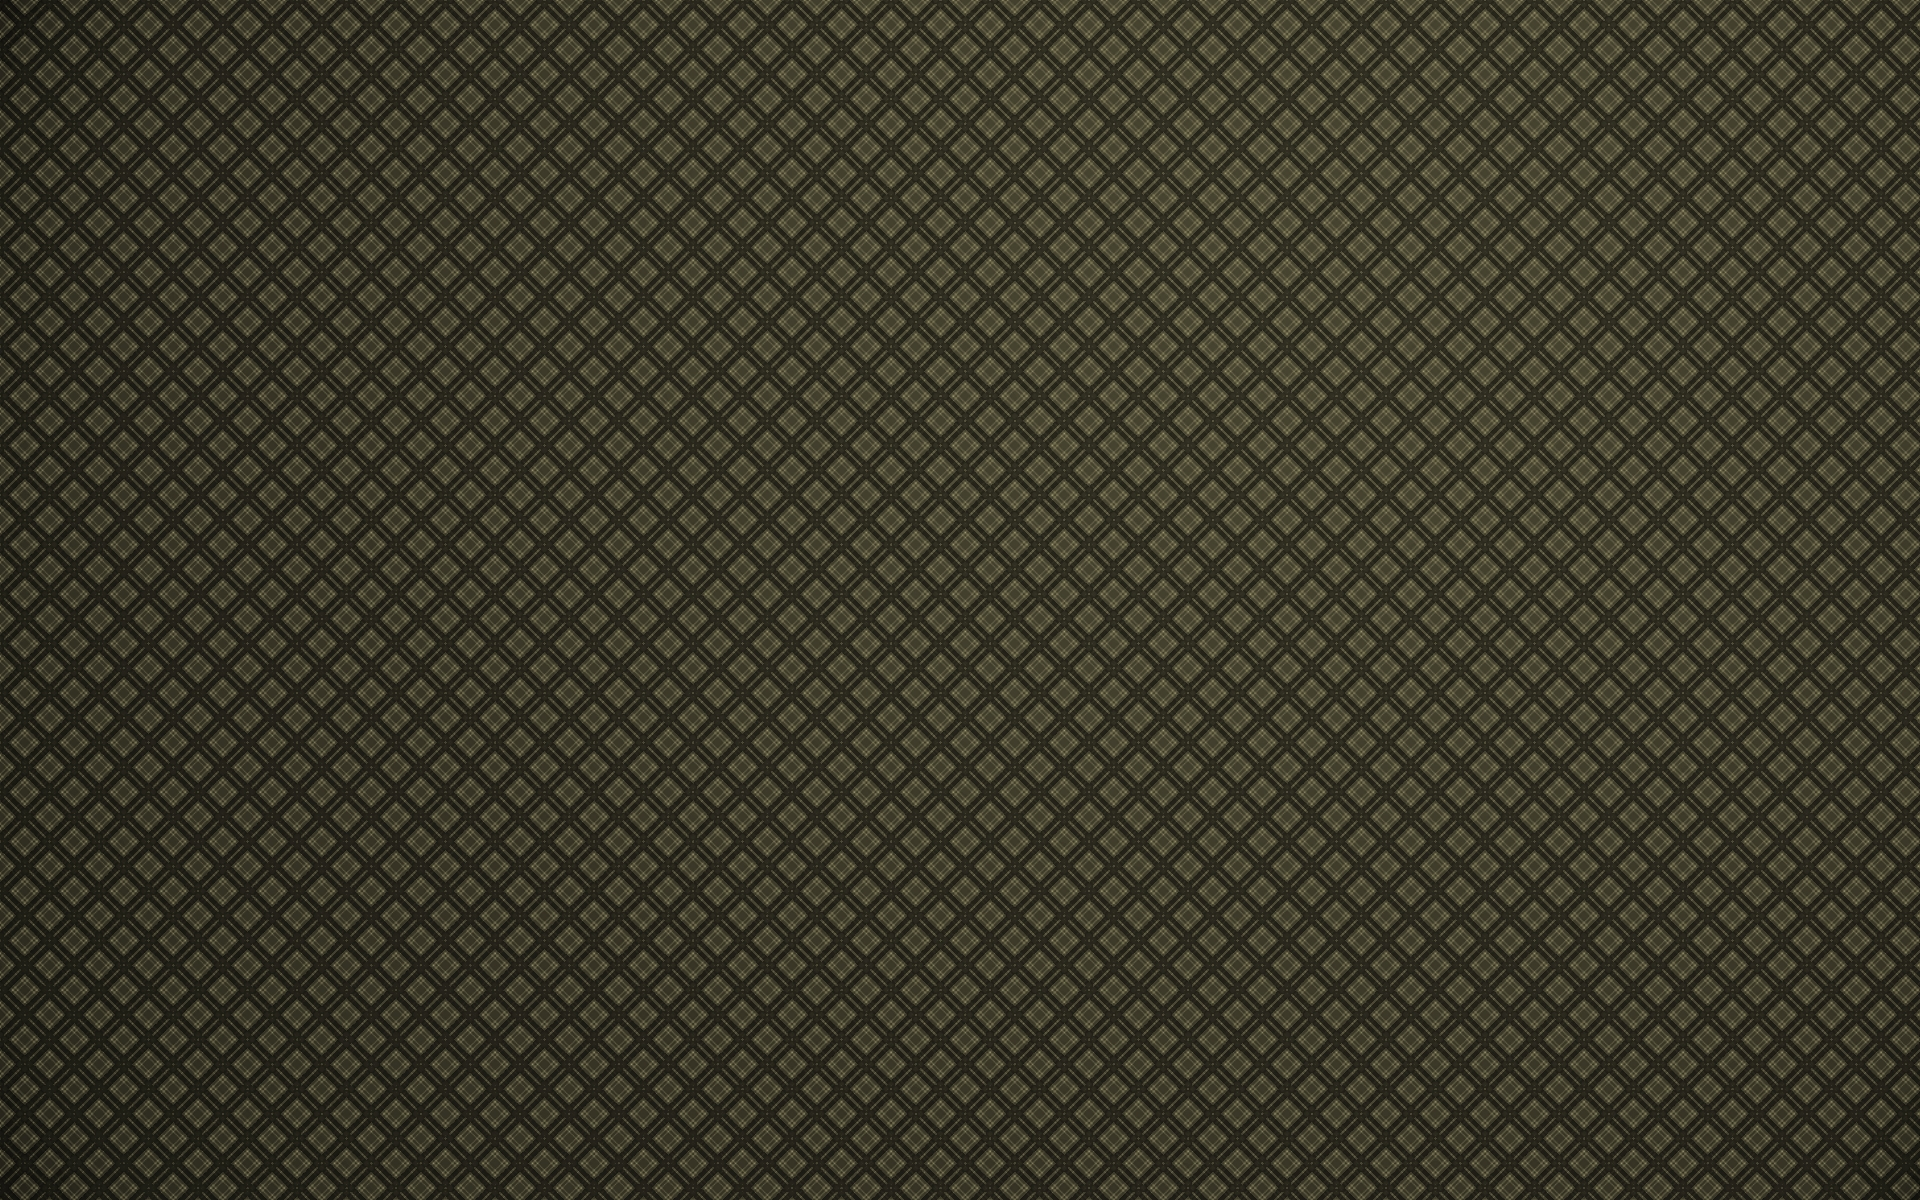 Textures Patterns Templates Download Photo Pattern